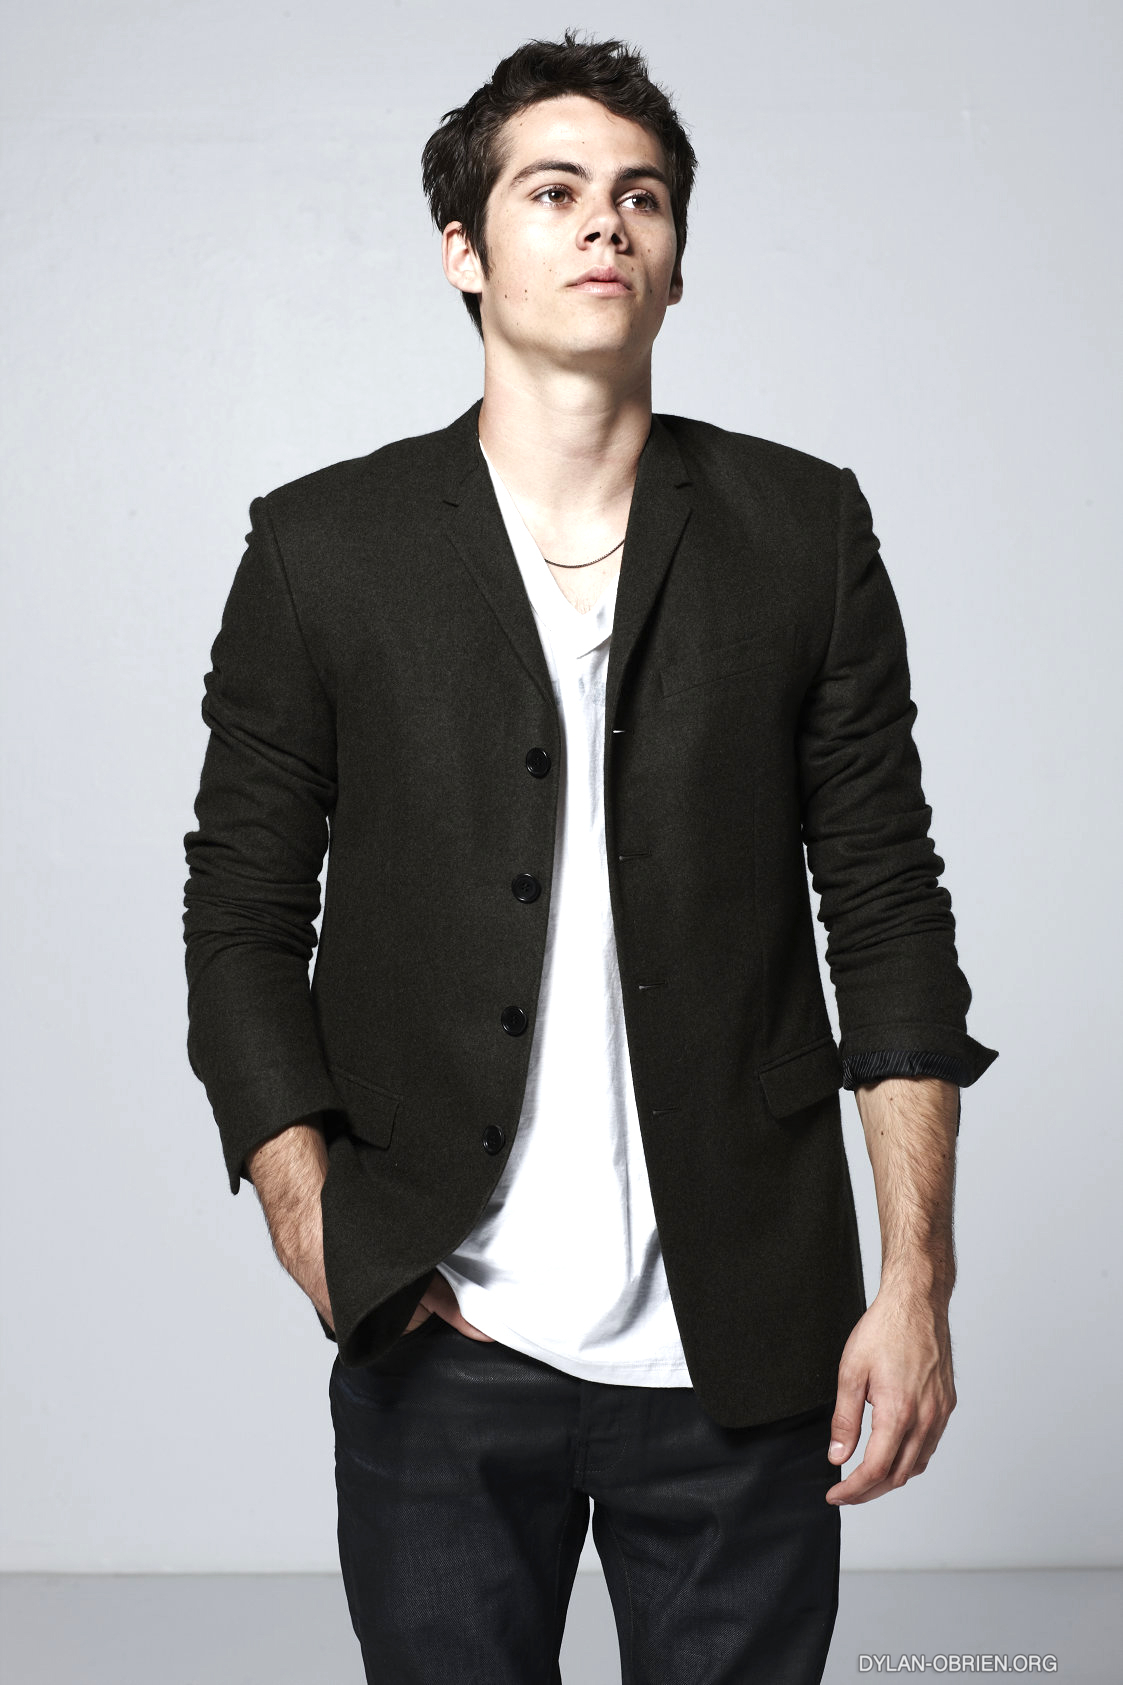 Dylan o 39 brien images bullet magazine photoshoots 2012 for The dylan